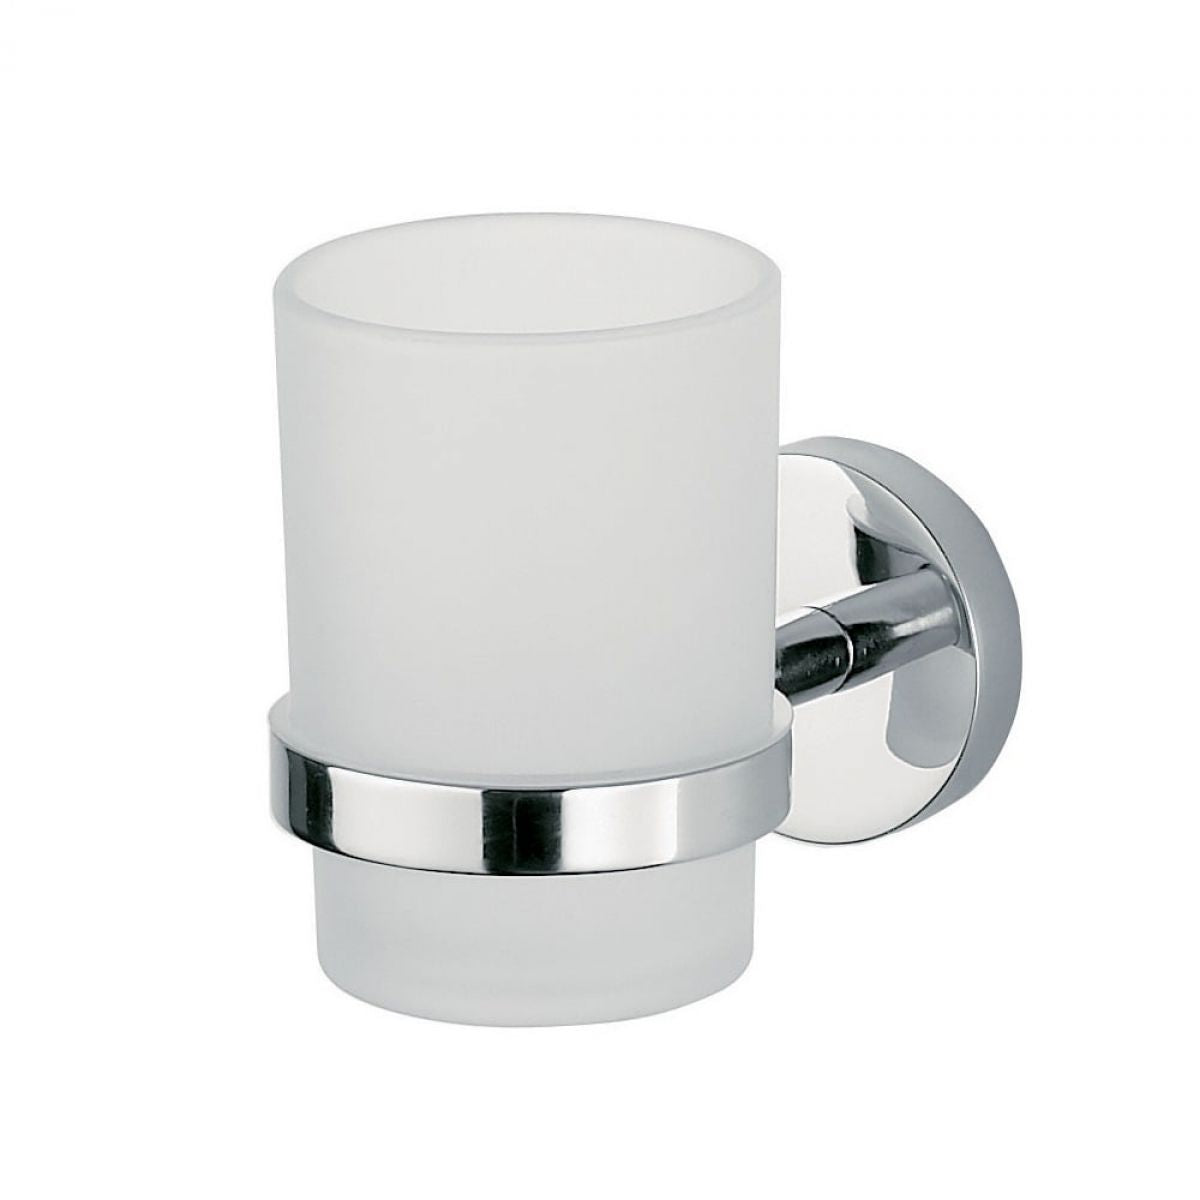 Forum Tumbler & Holder - blueskybathrooms